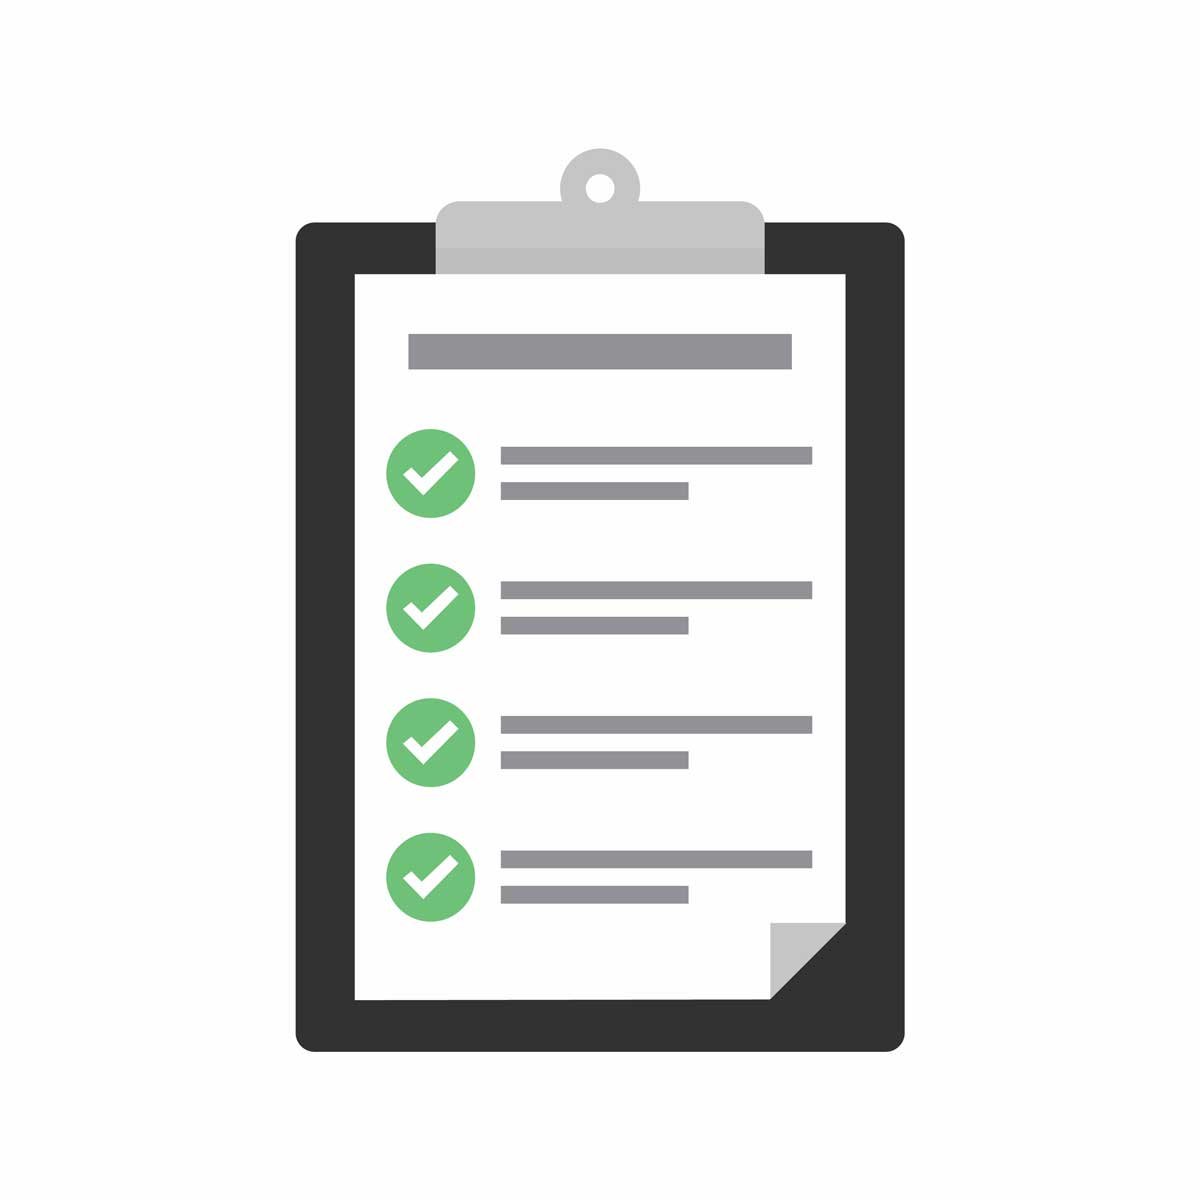 Clipboard with checklist icon. Flat illustration of clipboard with checklist icon for web with green check boxes on white background.